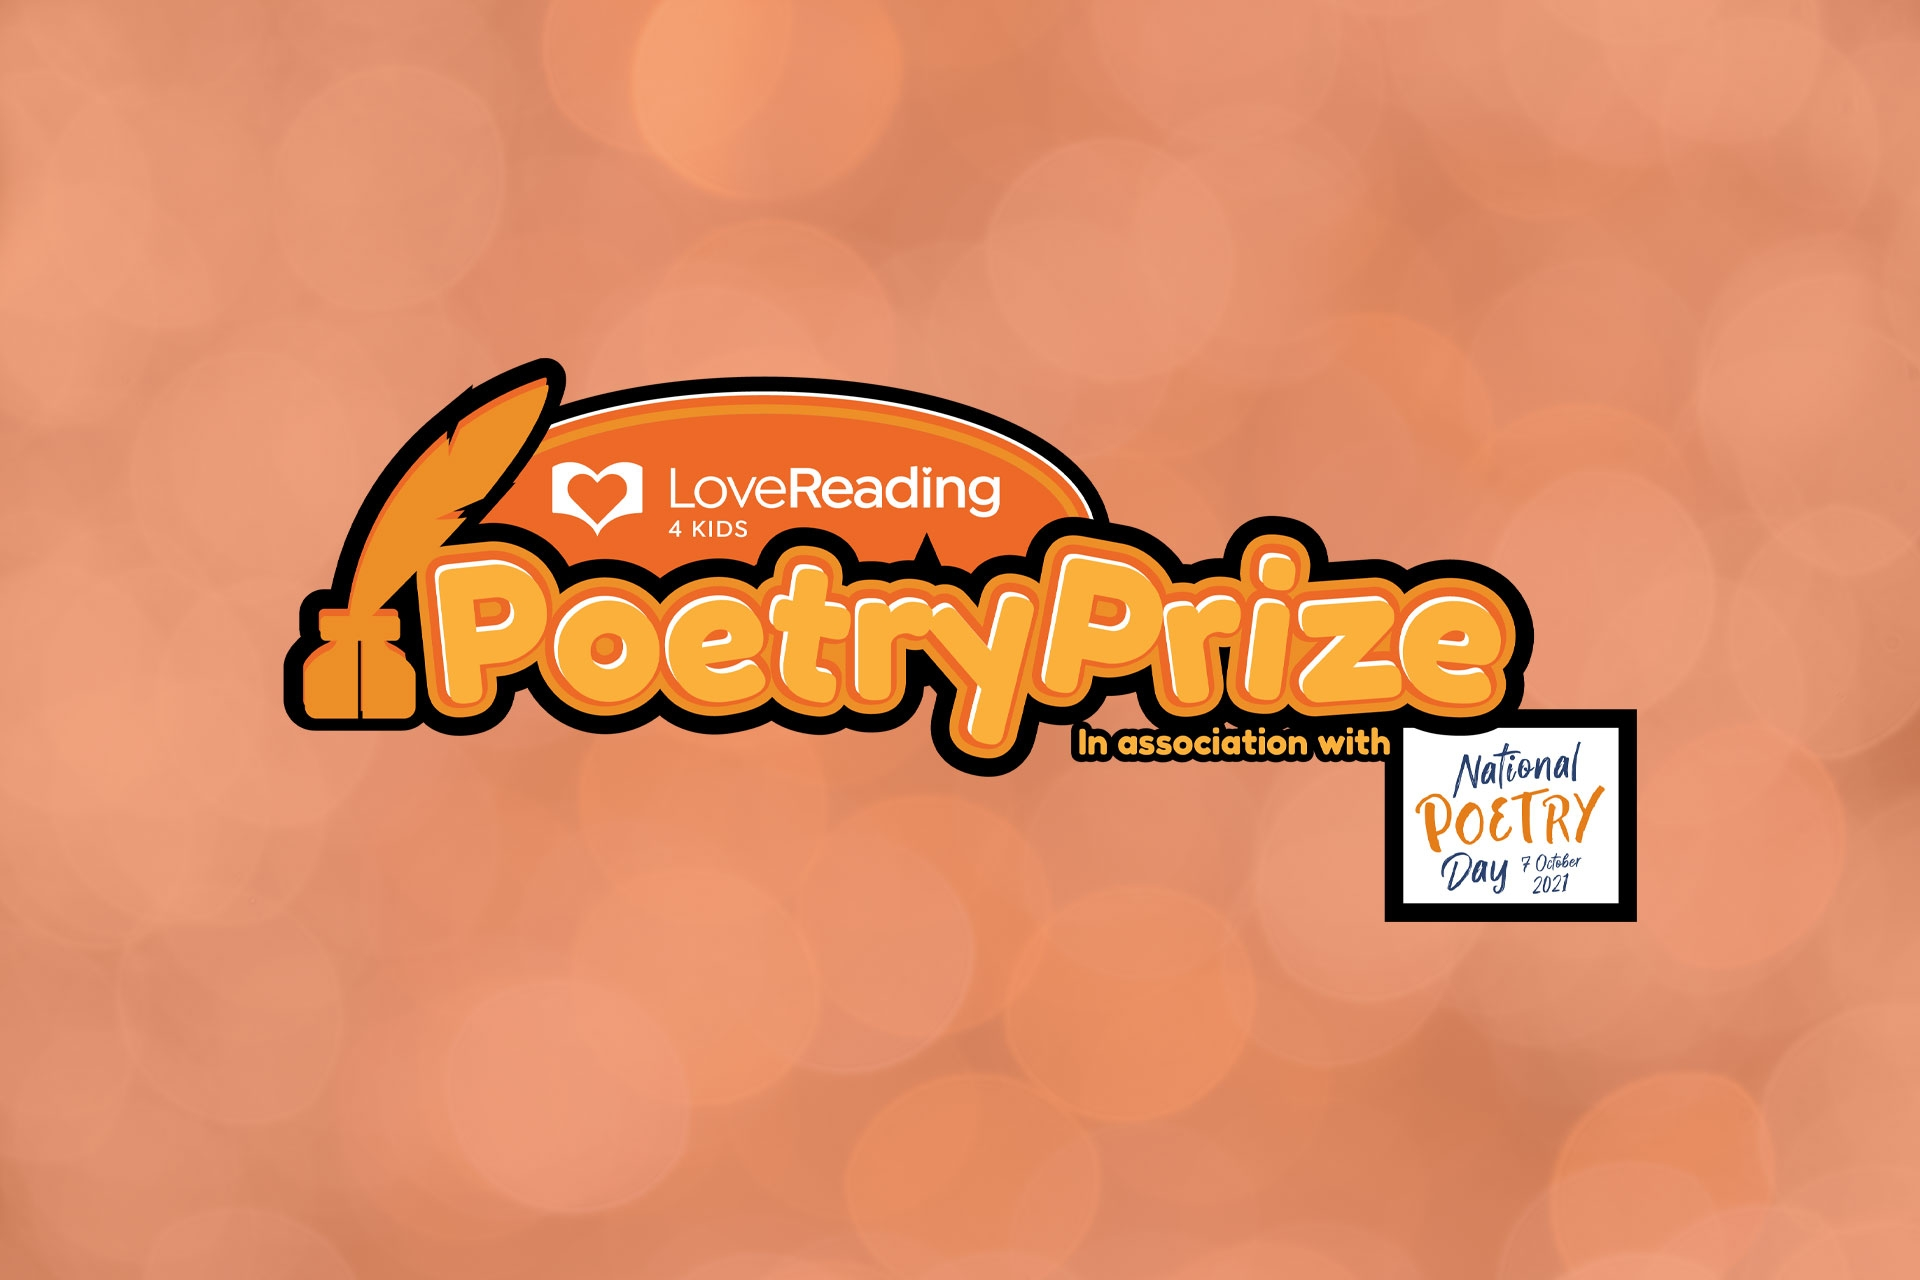 Shortlist announced for the 2021 LoveReading4Kids Poetry Prize - vote for your favourite in the People's Choice!